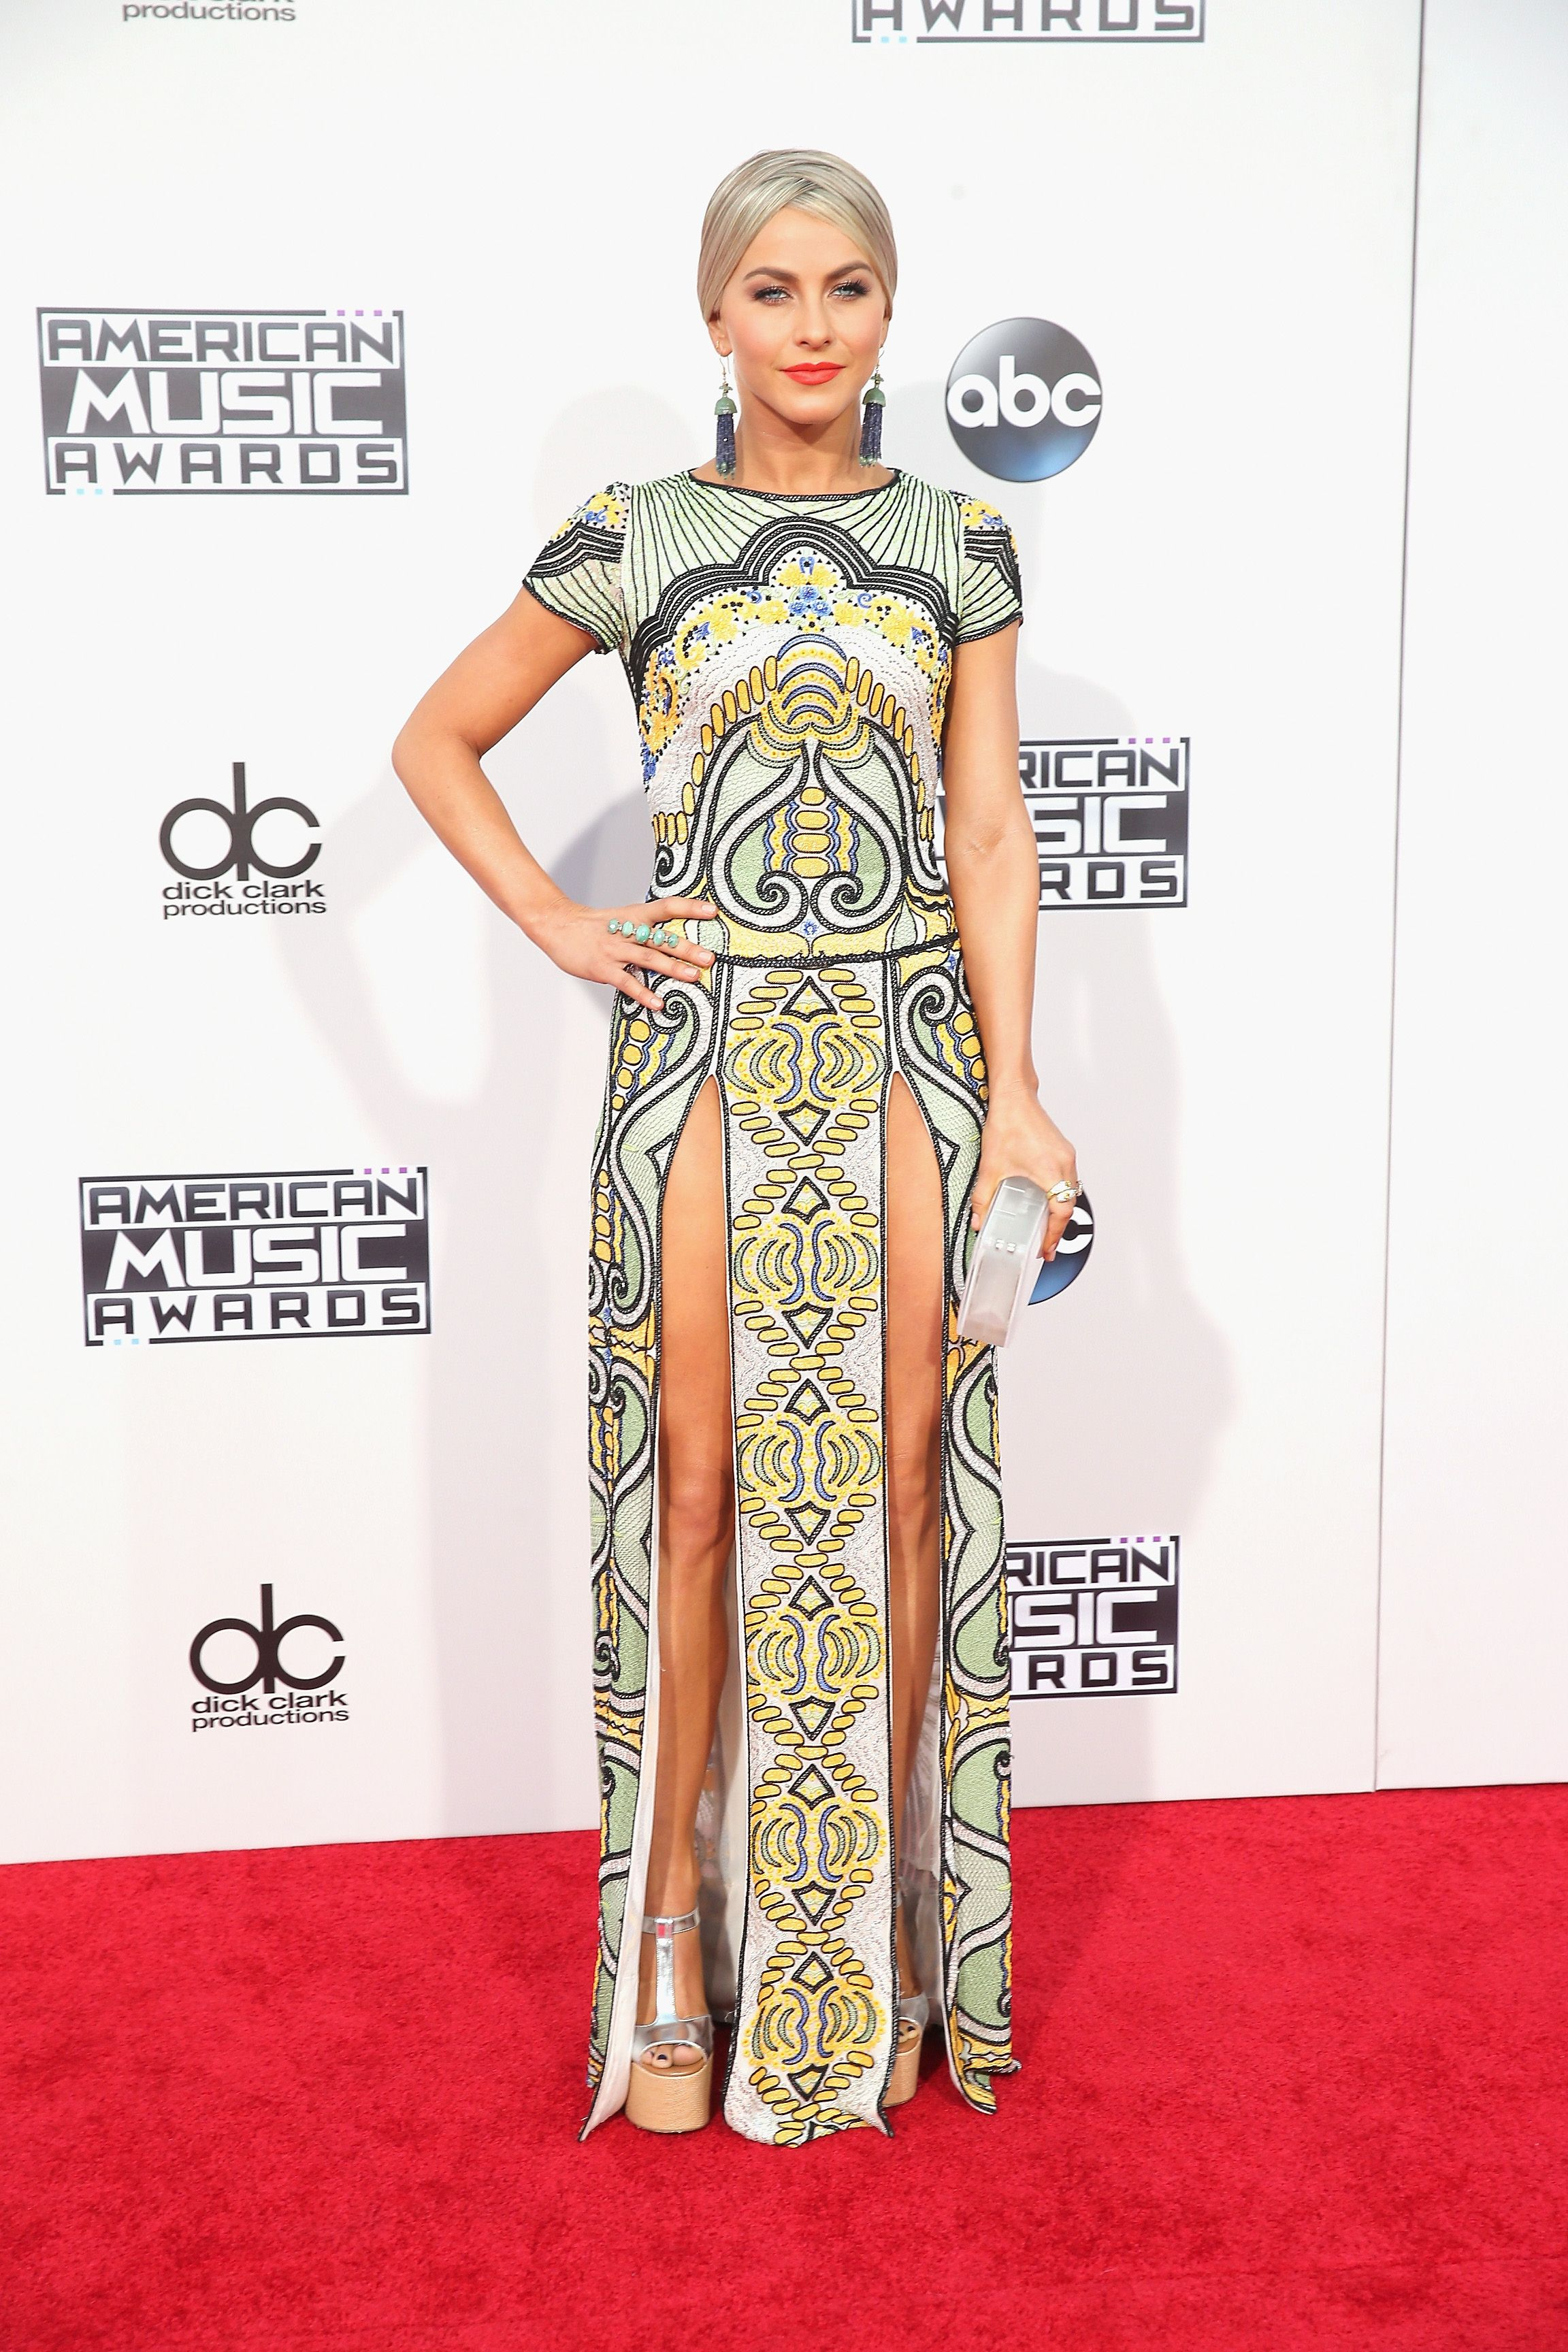 a890343335 The Best Looks from the American Music Awards Red Carpet ...